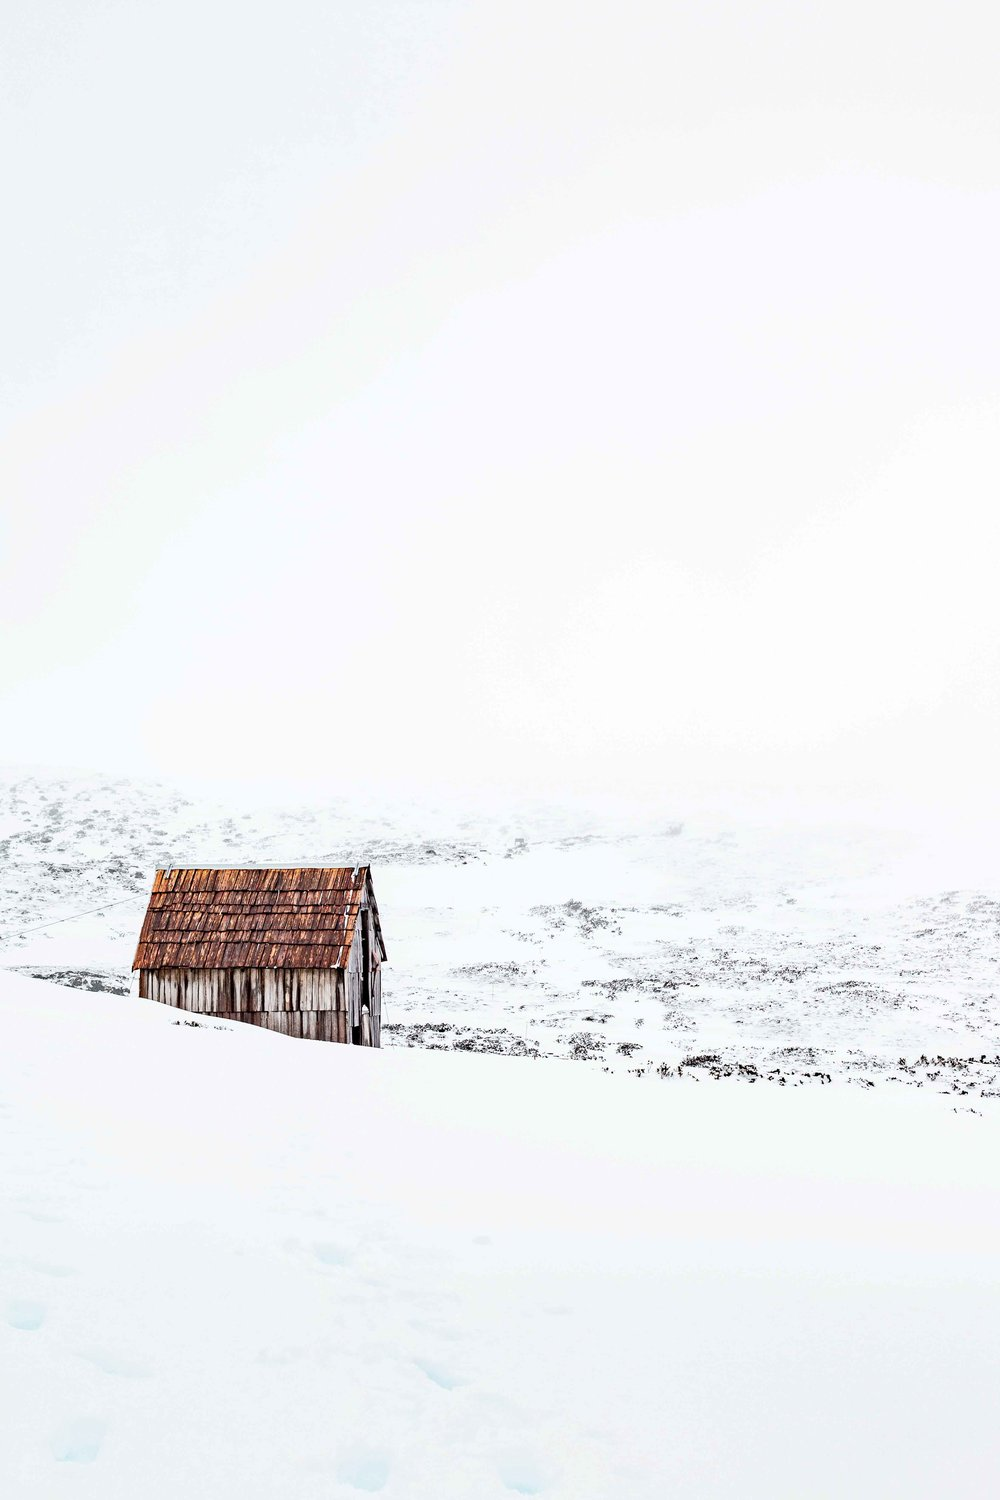 Snow Hut, Cradle Mountain, Tasmania